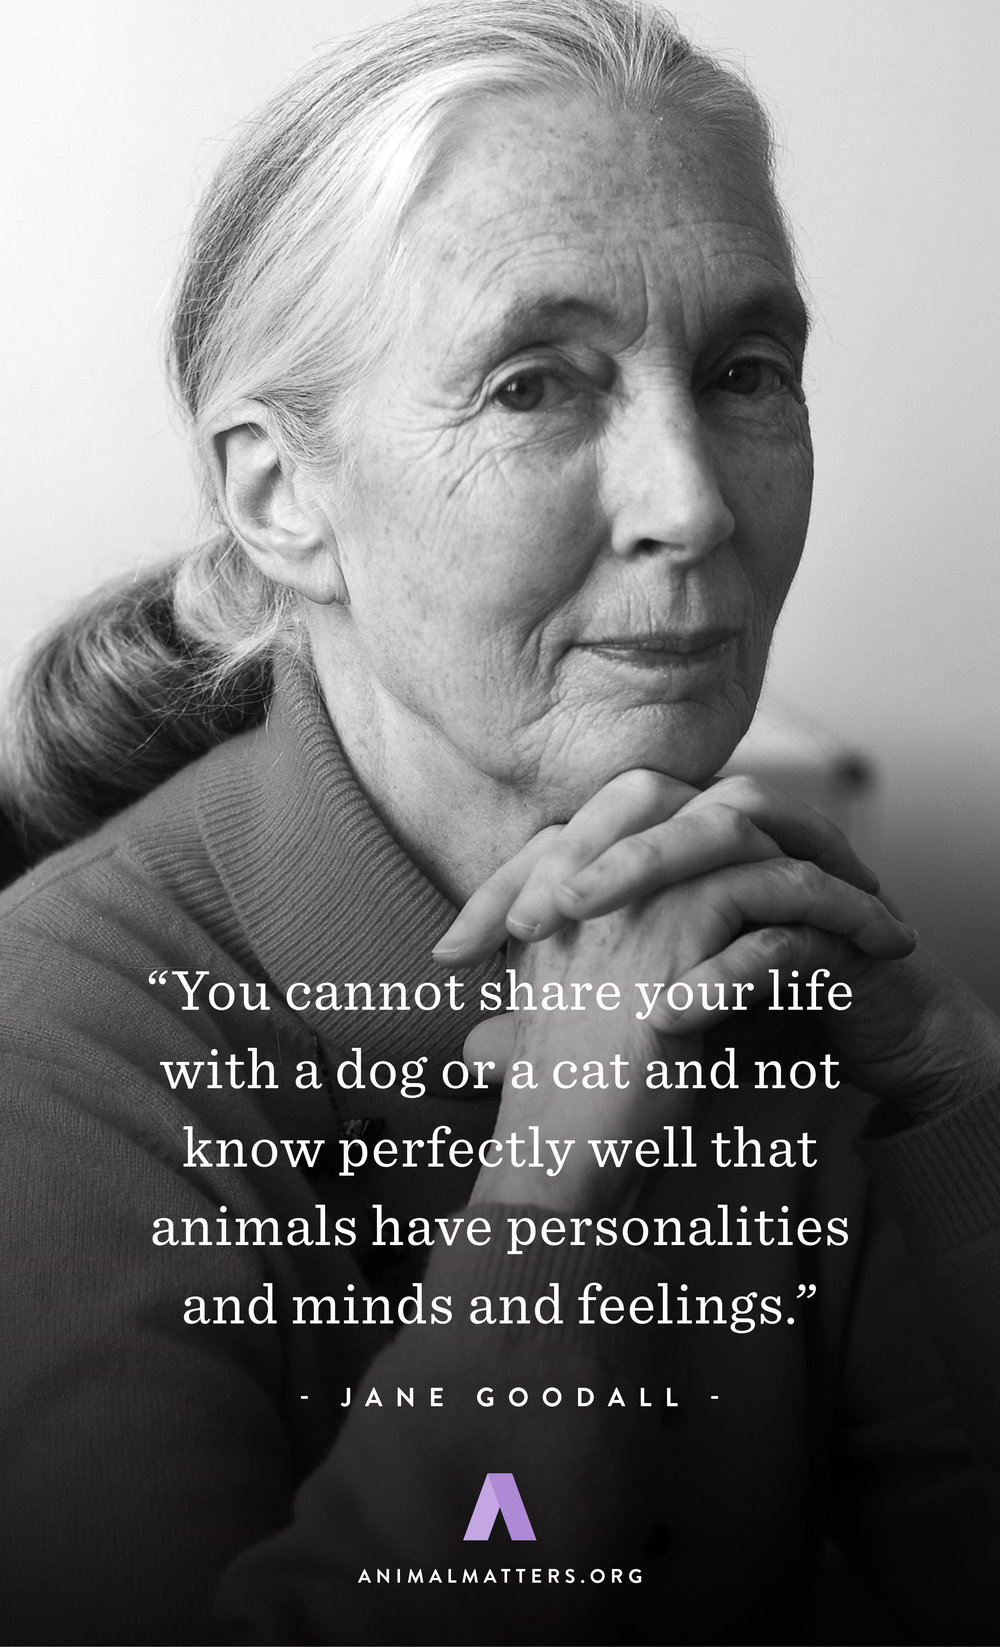 Animal-Matters-Jane-Goodall-Quote-Rights-Poster-Ad-Design-PETS.jpg